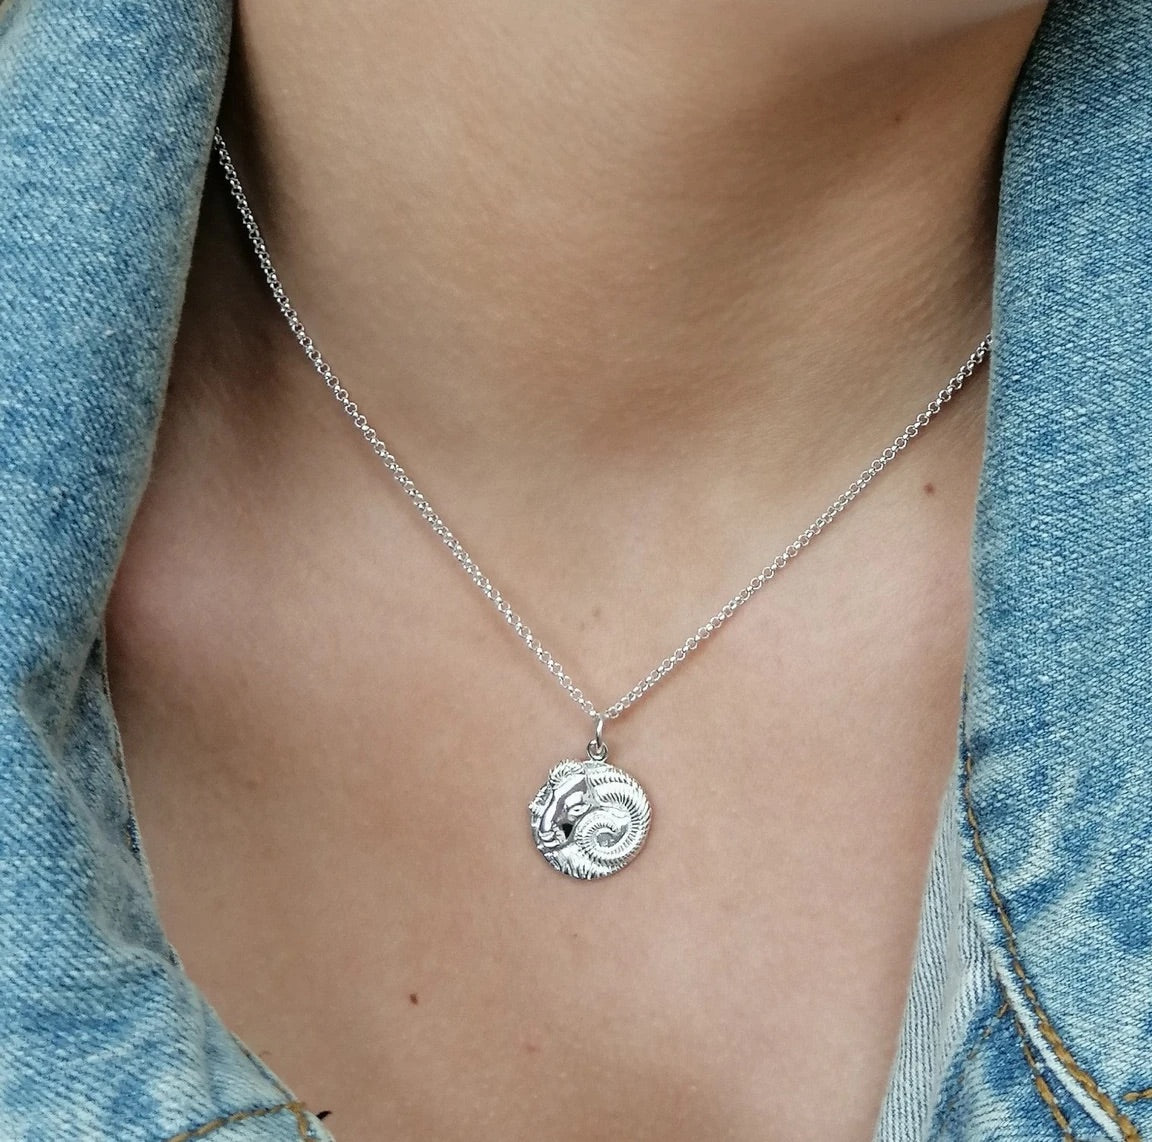 Aries Zodiac necklace - silver